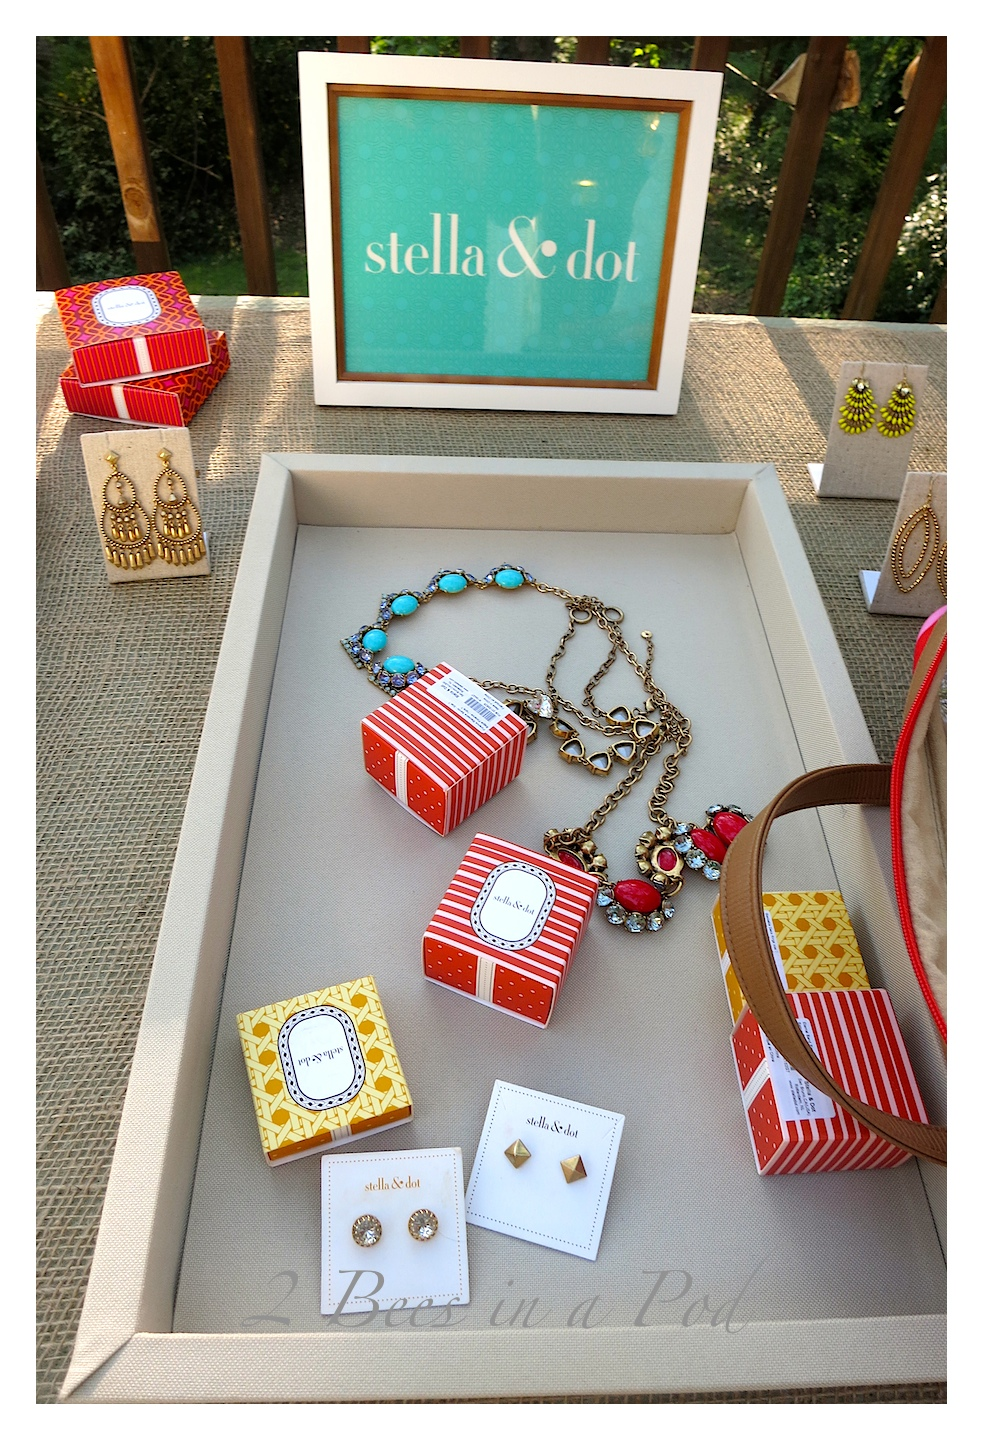 How to cohost a successful girl's night jewelry party. Great food, fun, friends, jewelry!